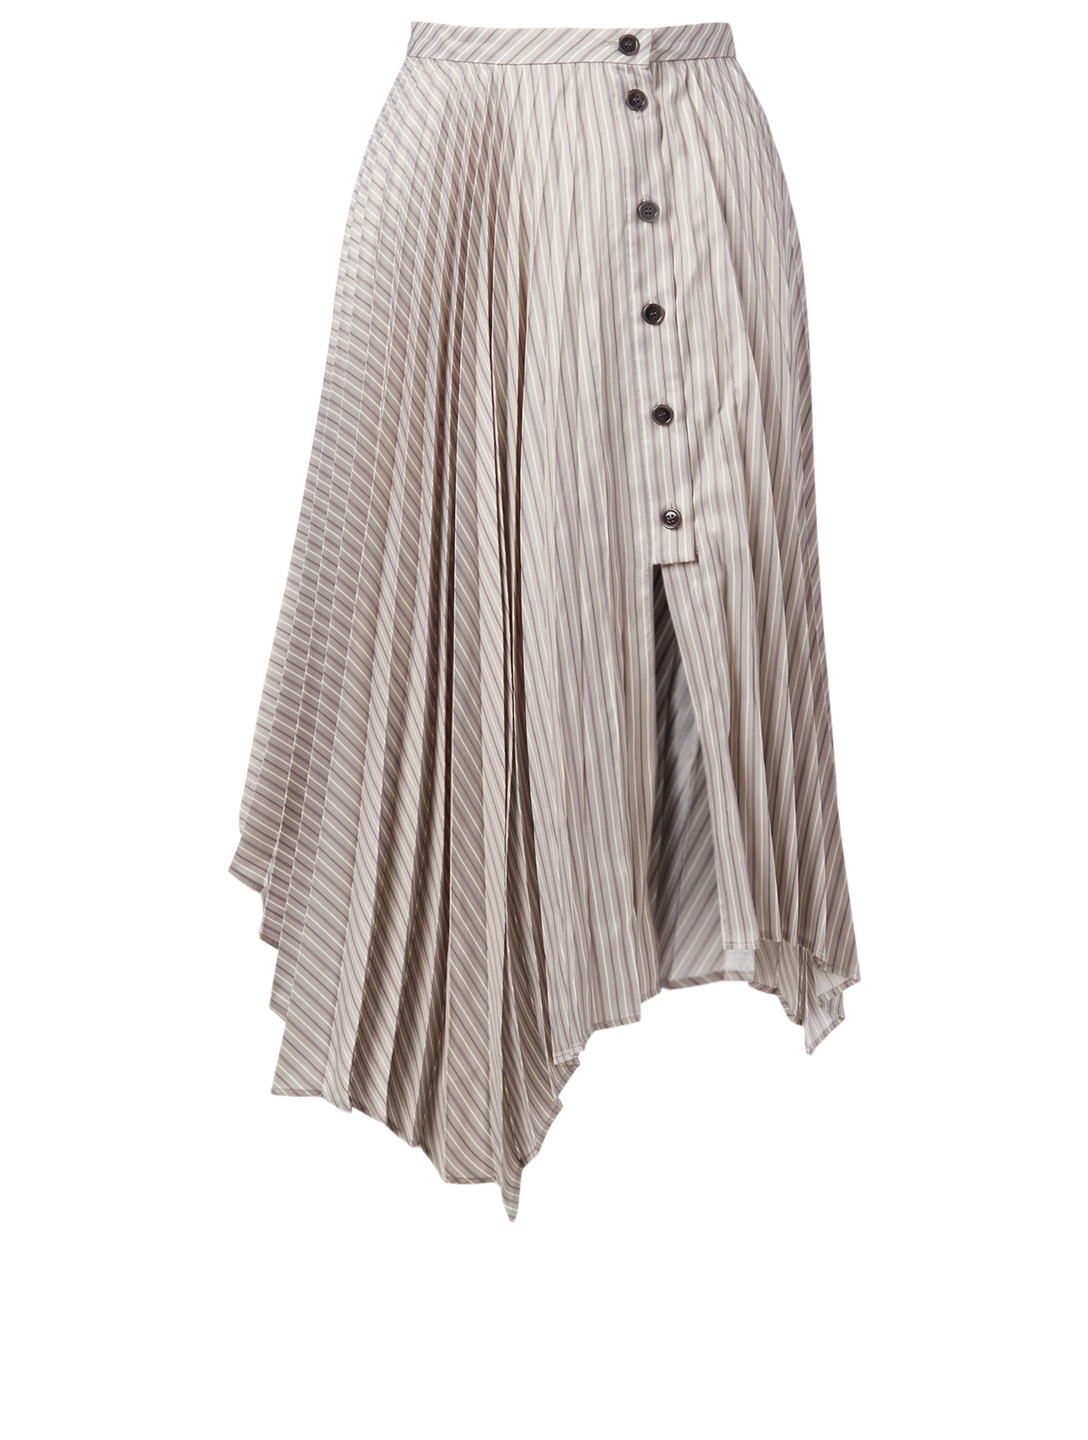 ACNE STUDIOS Pleated Asymmetric Midi Skirt Women's Grey